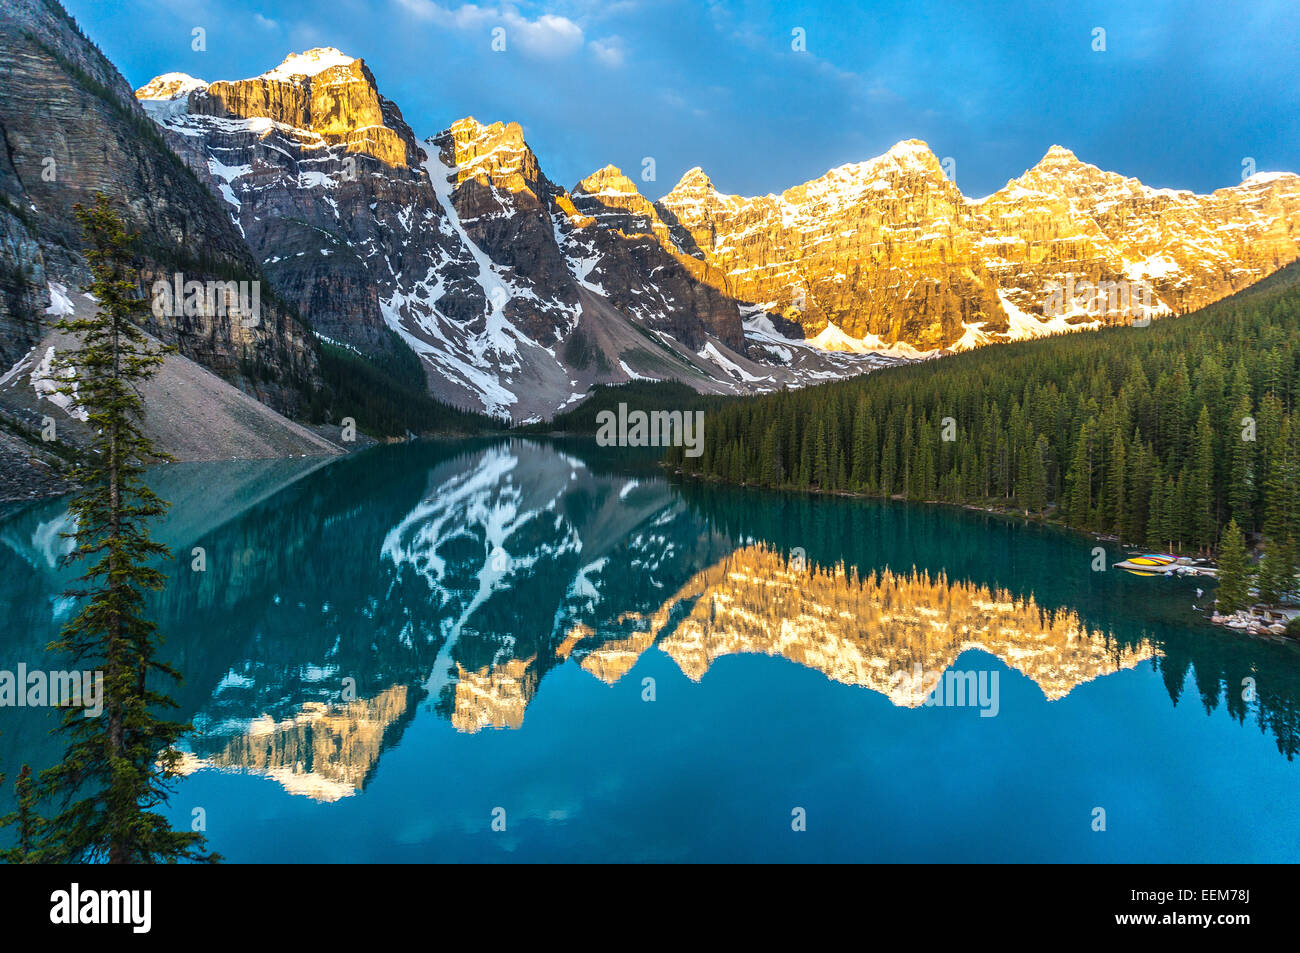 Valley of the Ten Peaks reflected in Morraine lake at sunrise, Banff National Park, Alberta, Canada Stock Photo